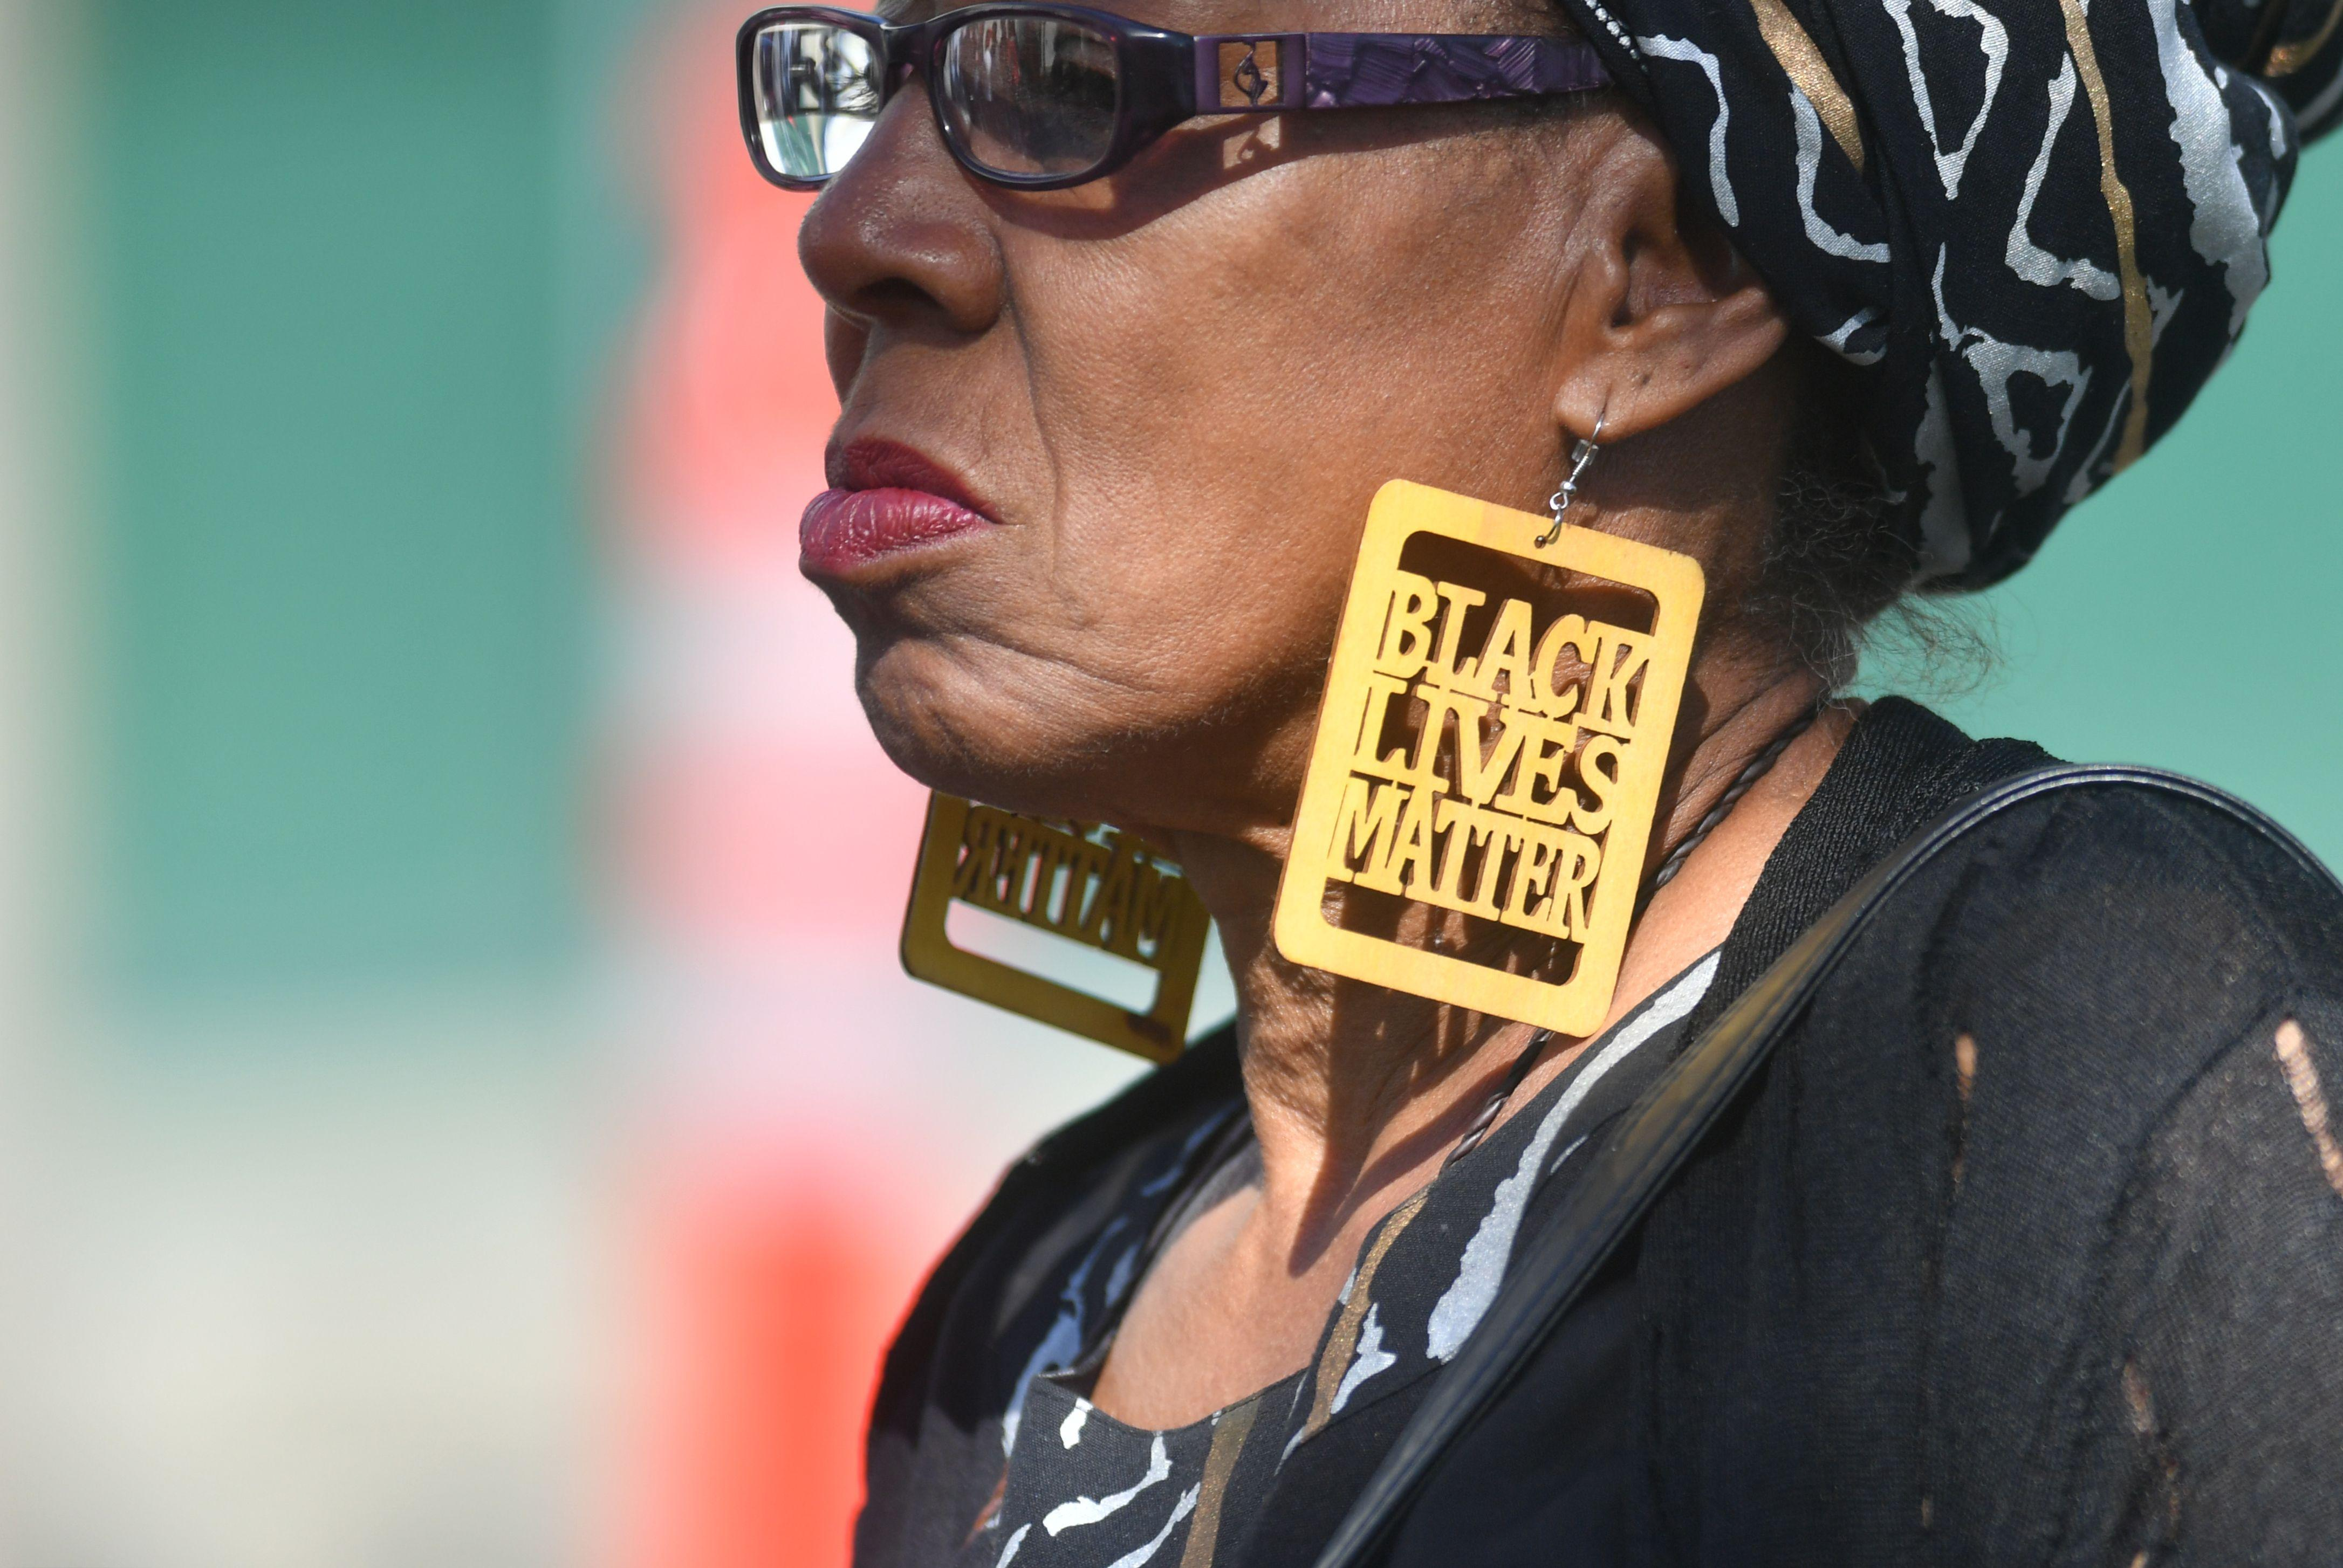 61-year-old woman injured by Sacramento Sheriff's vehicle at Stephon Clark protest